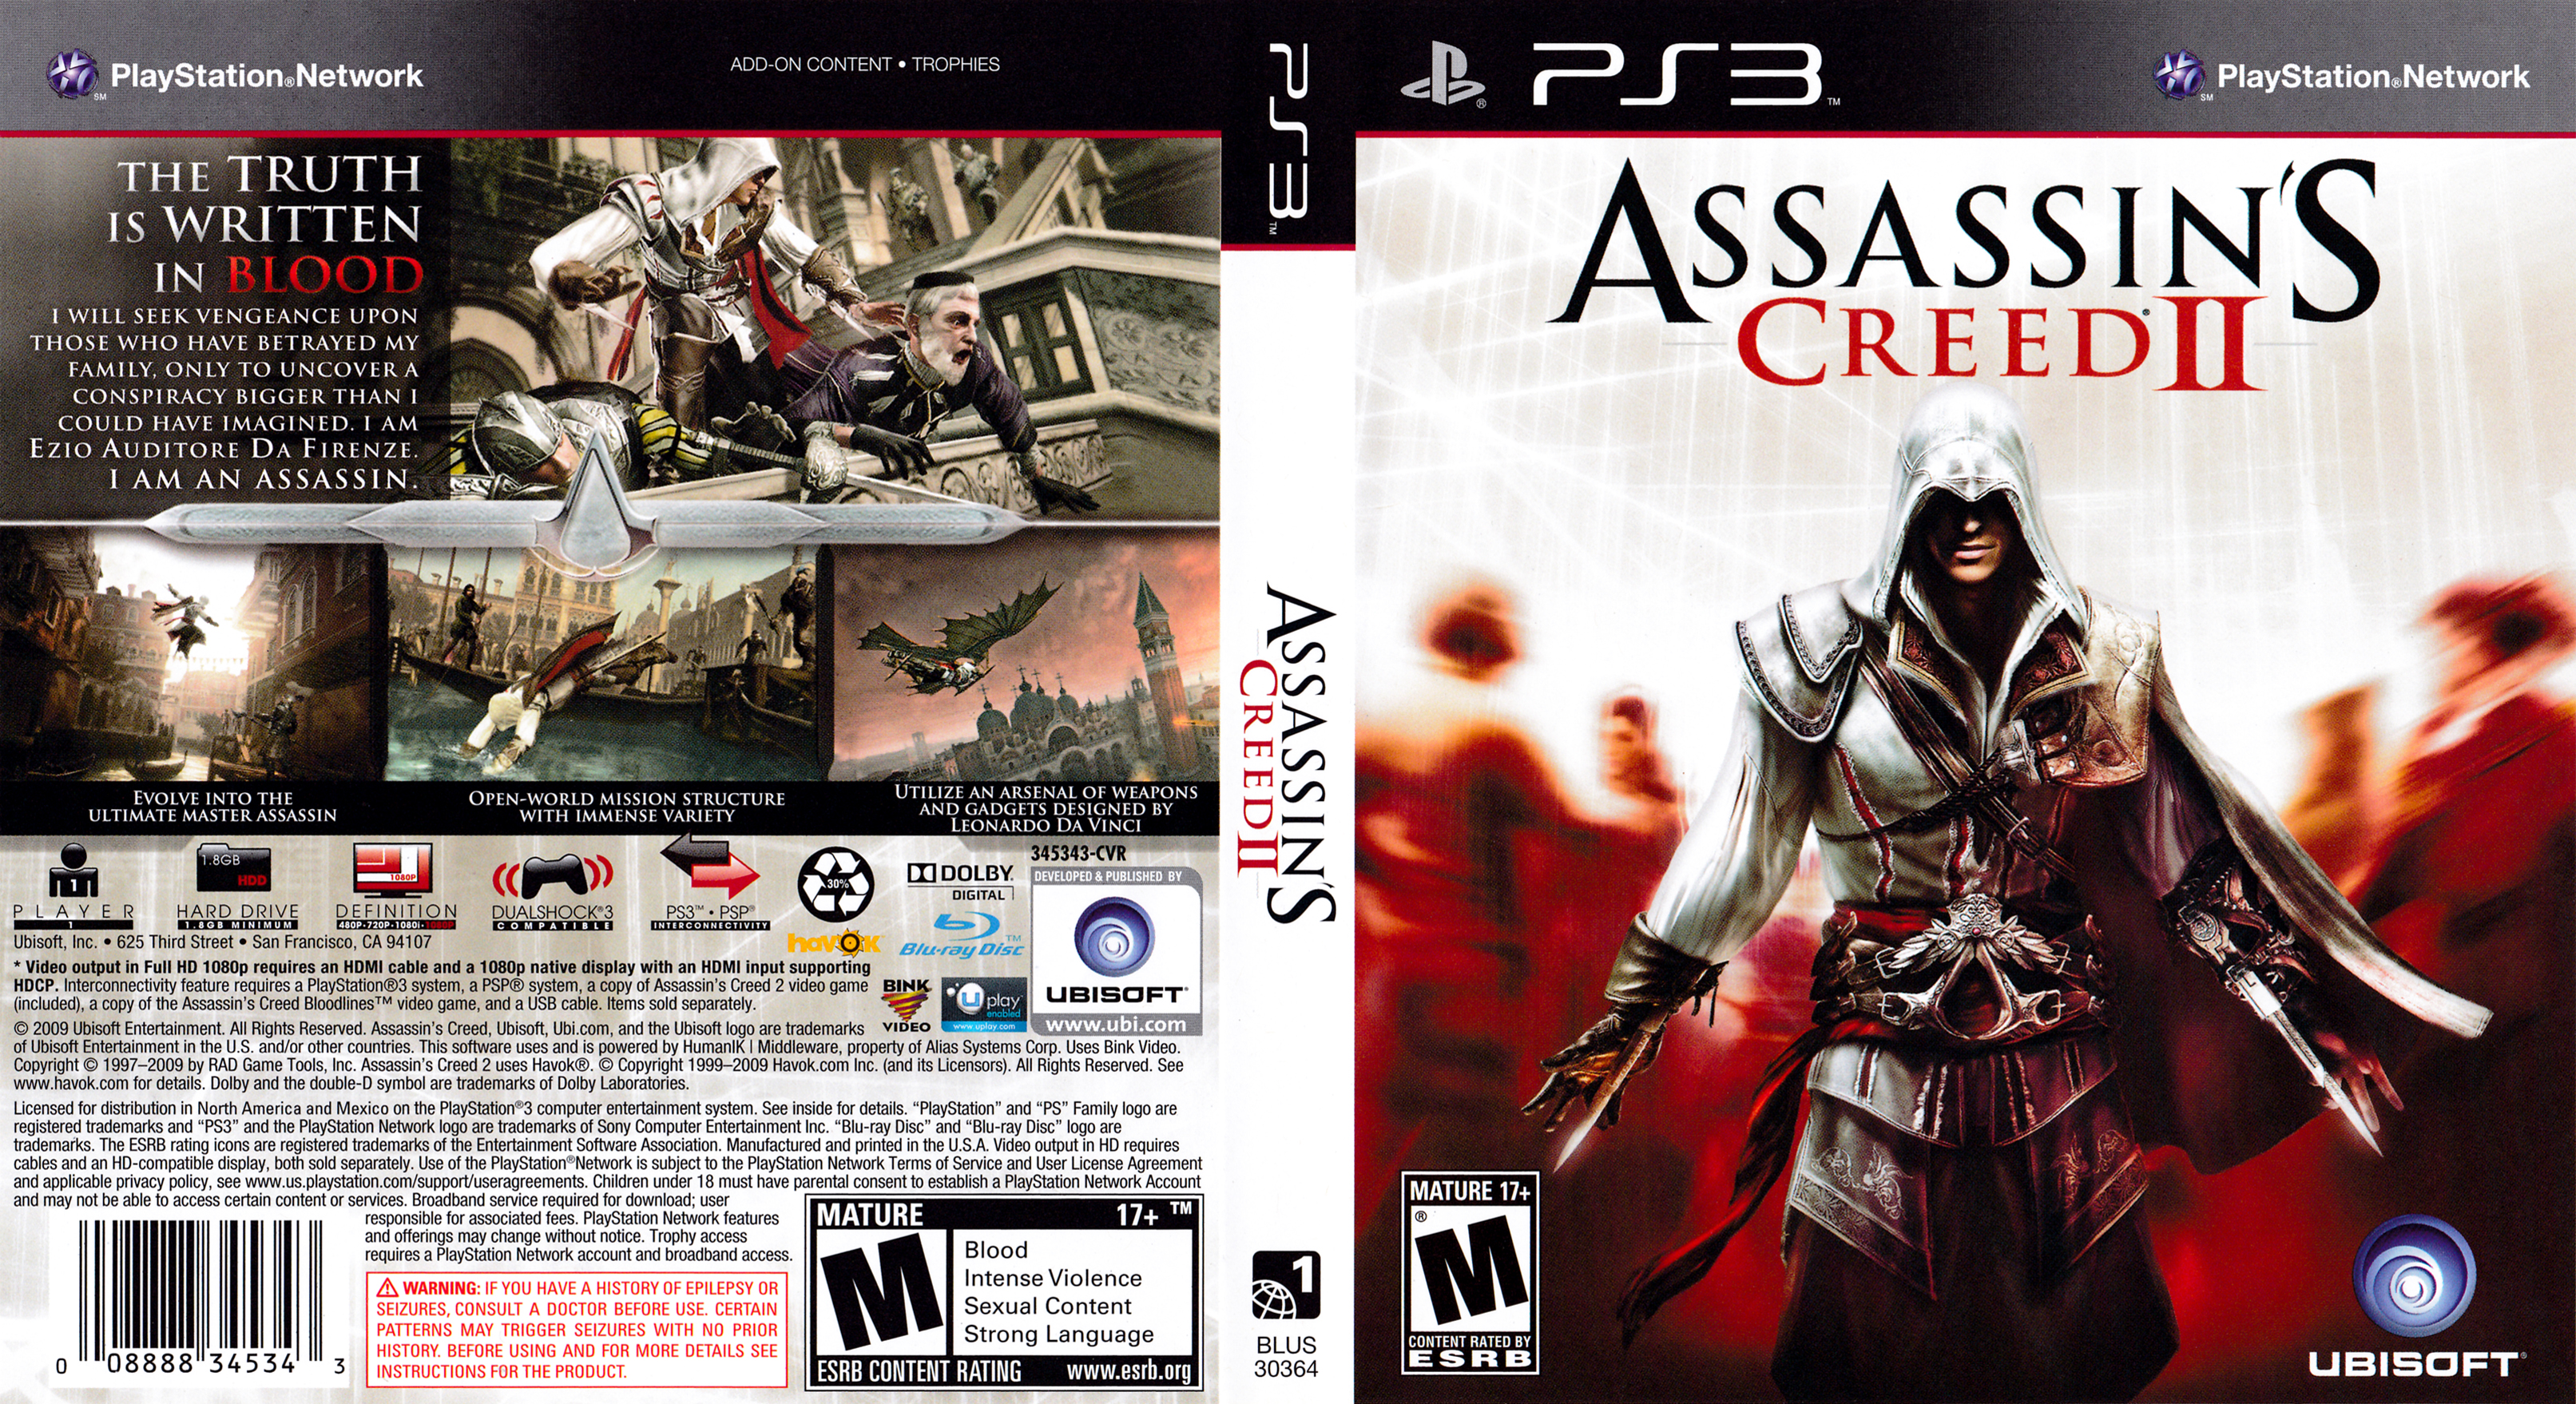 Assassin S Creed Ii Playstation 3 Covers Cover Century Over